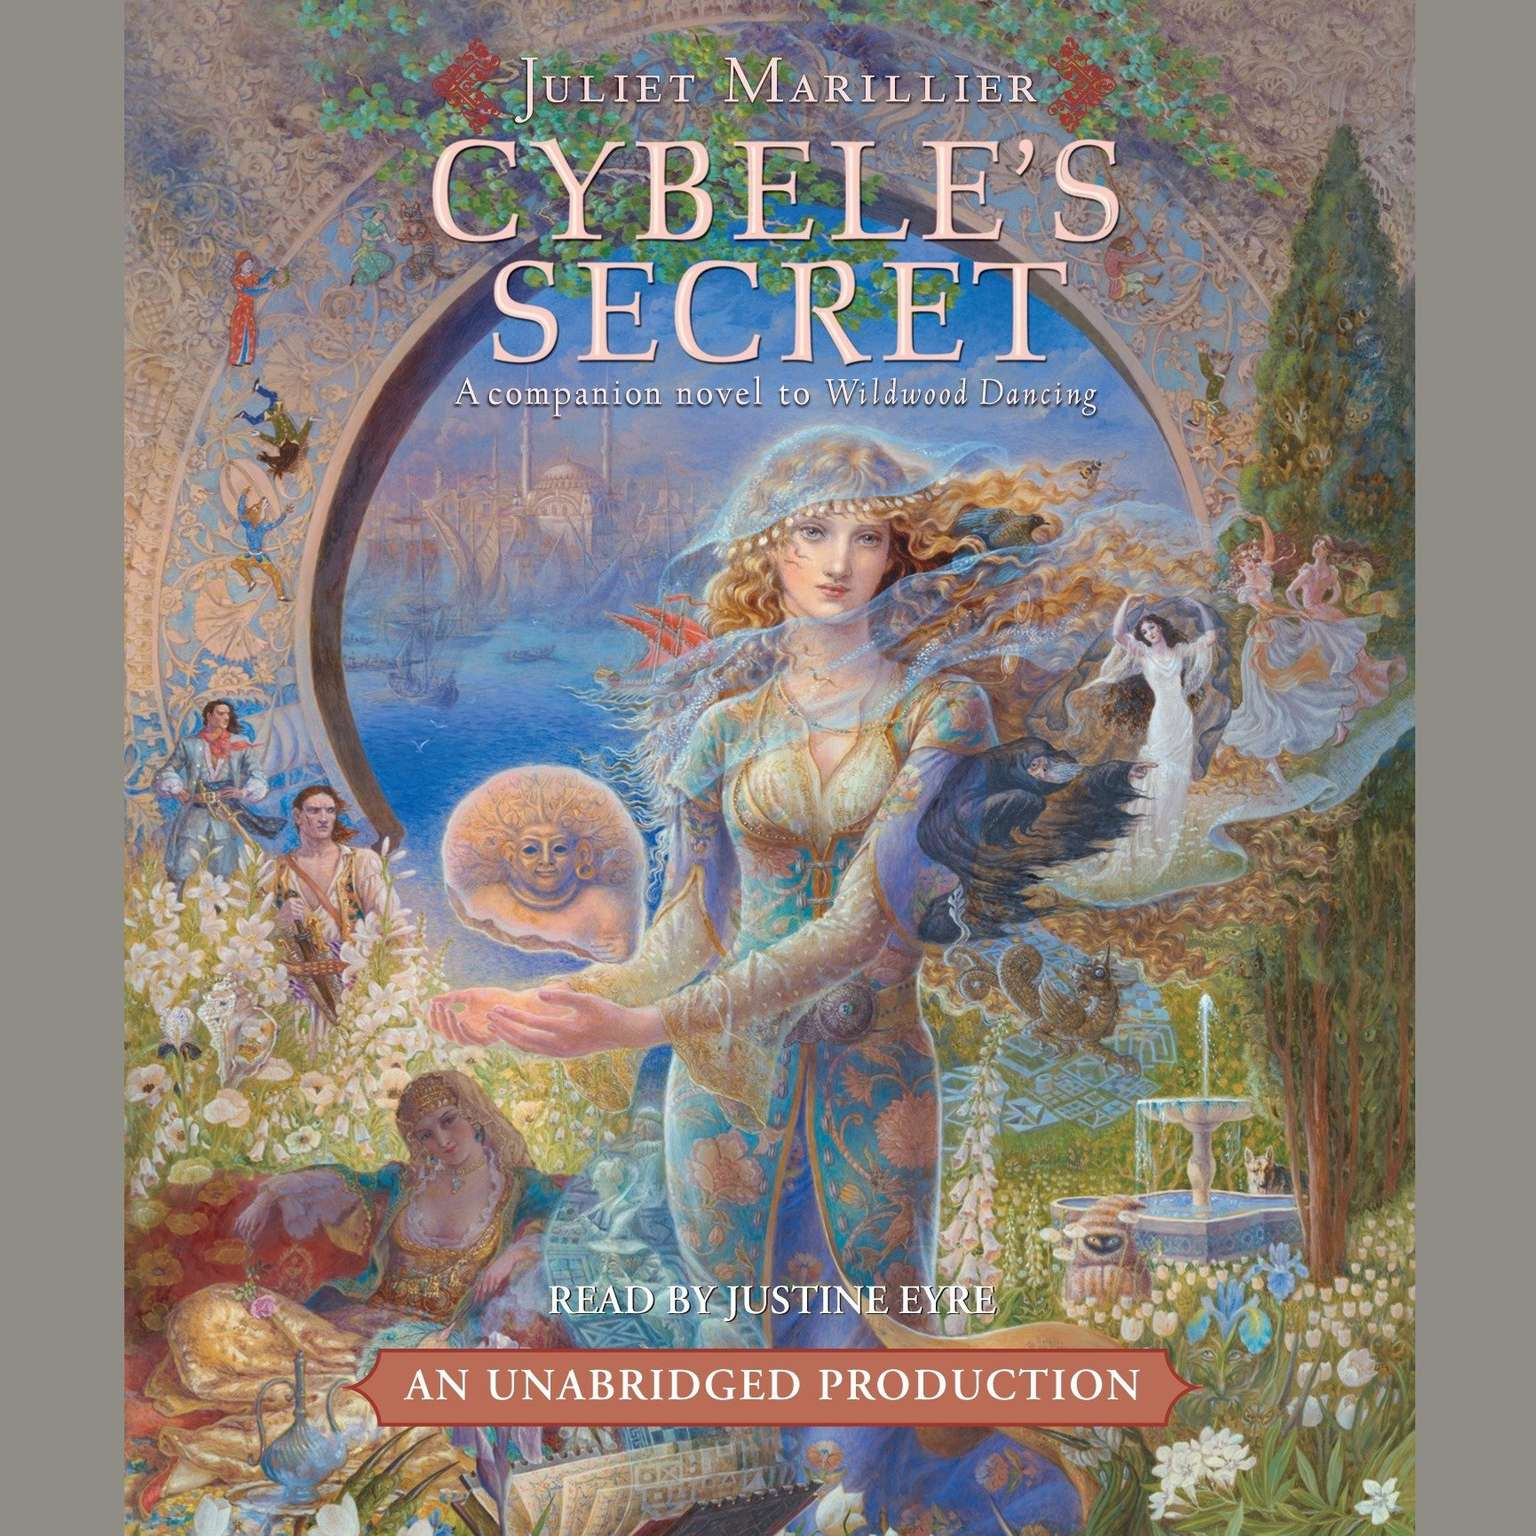 Printable Cybele's Secret Audiobook Cover Art